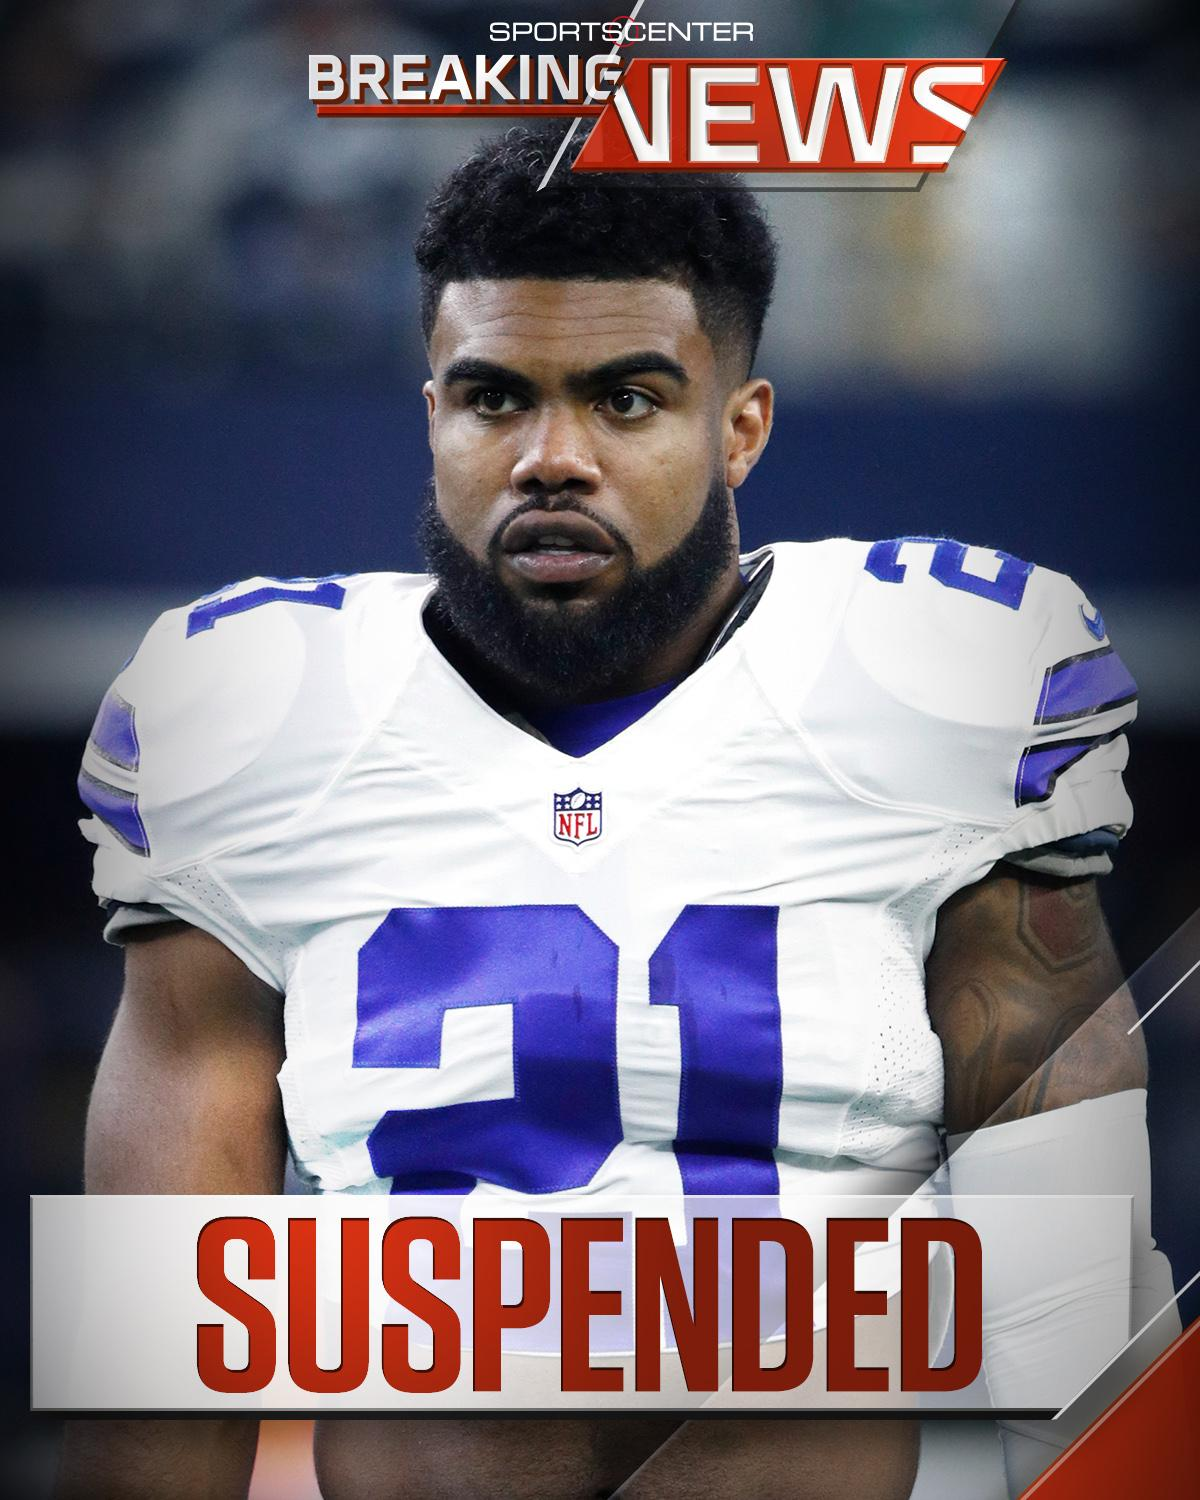 Ezekiel Elliott is being suspended 6 games, according to sources. (via @AdamSchefter) https://t.co/edGC6XNoFh